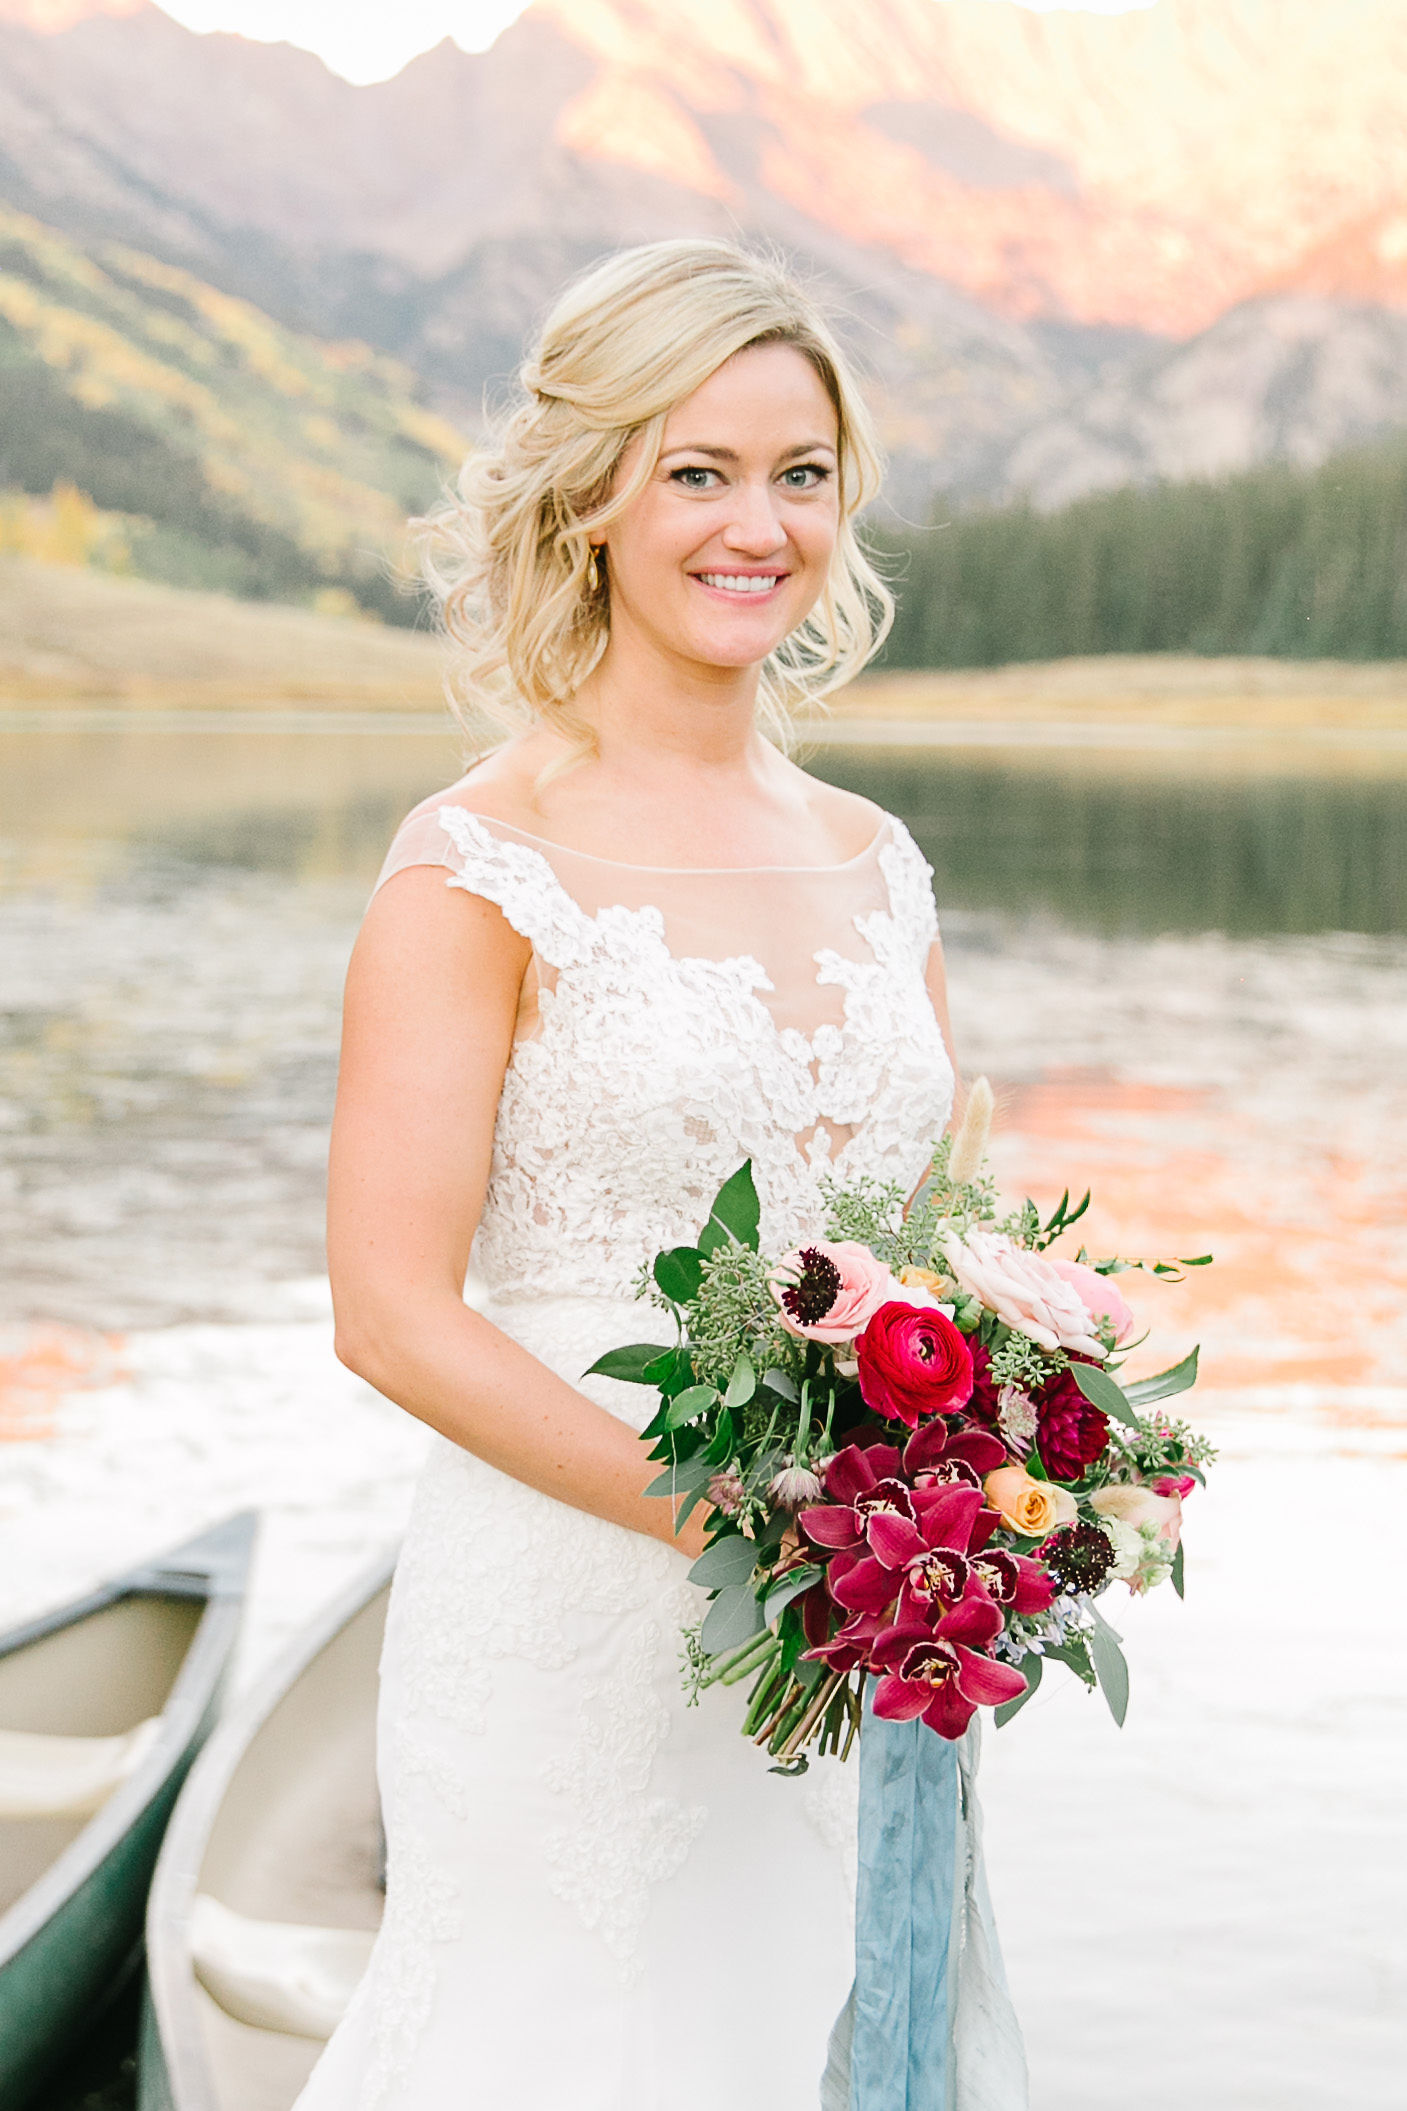 Flowers by Lace + Lilies, wedding flowers, welcome sign, reception flowers, fall wedding, fall flowers, lake wedding, colorado wedding